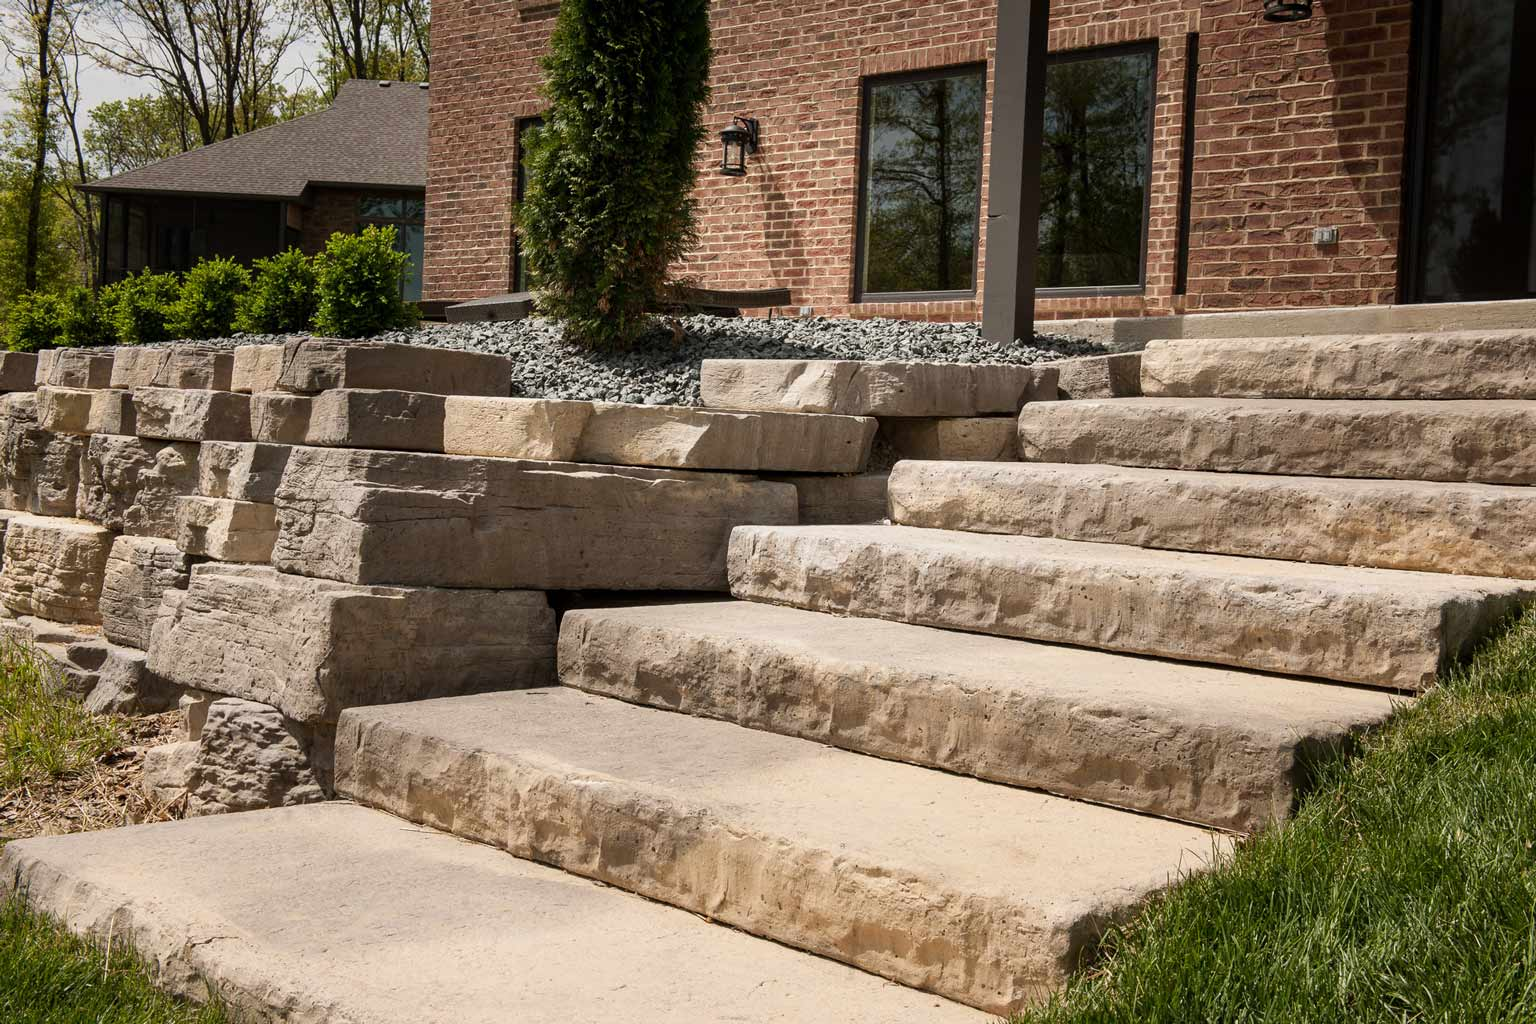 Rosetta Dimensional Steps Mimic Rock Faced Limestone Steps